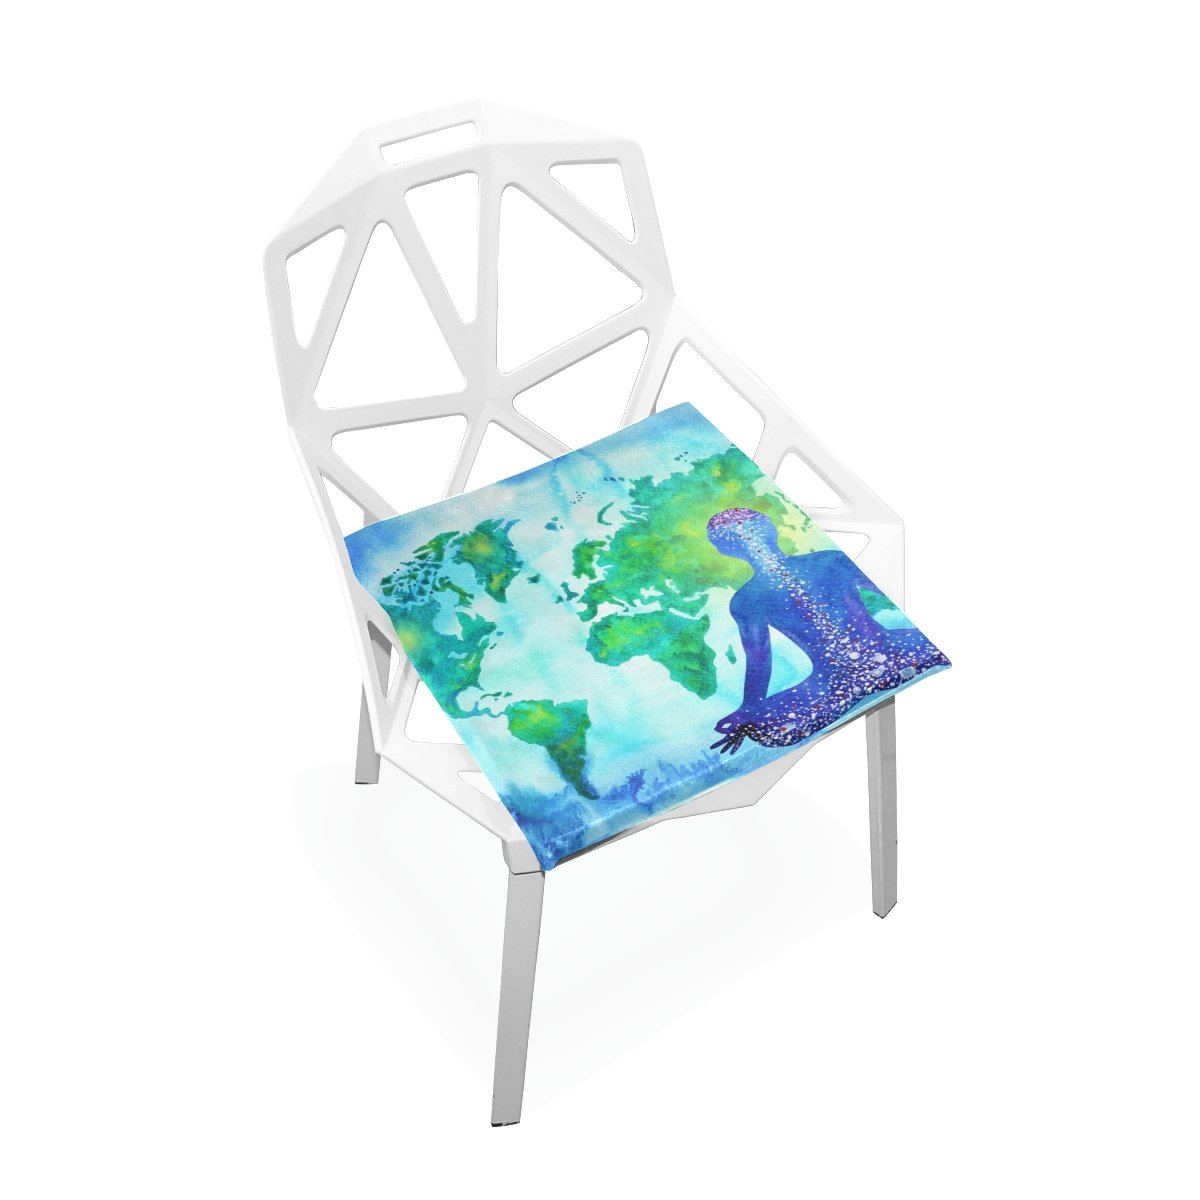 PLAO Chair Pads Abstract Human Power World Map Soft Seat Cushions Nonslip Chair Mats for Dining, Patio, Camping, Kitchen Chairs, Home Decor